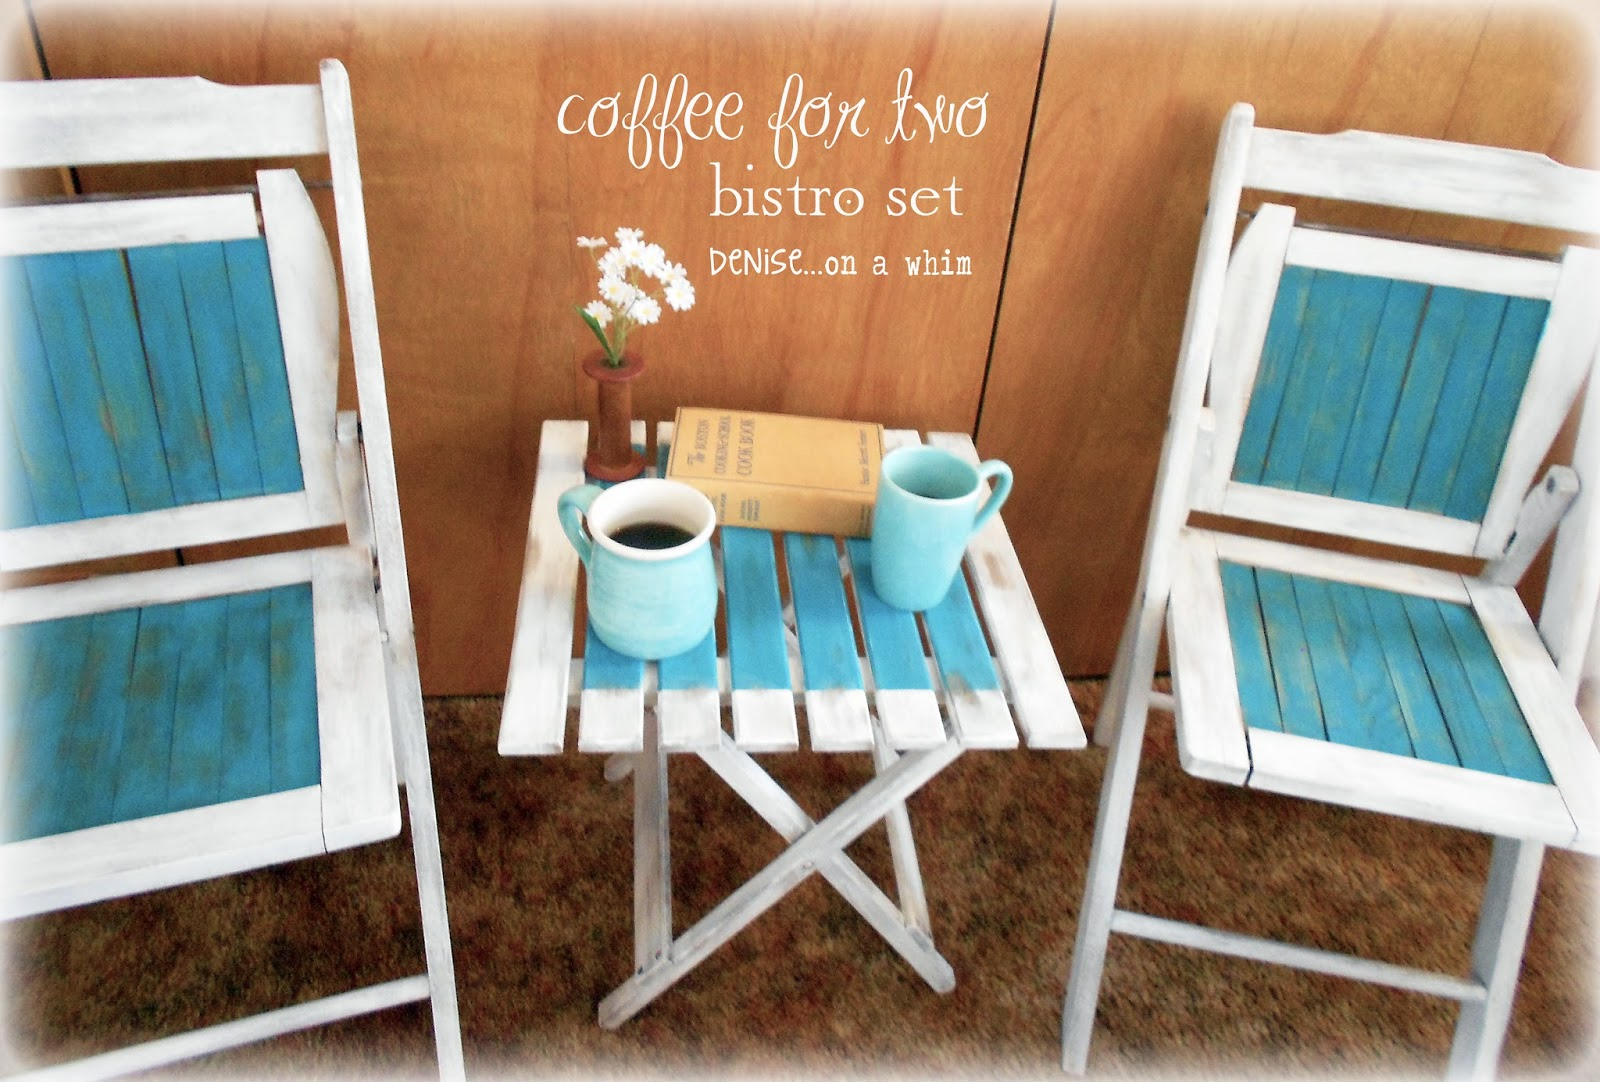 Coffee bistro set with vintage wooden folding chairs via http://deniseonawhim.blogspot.com